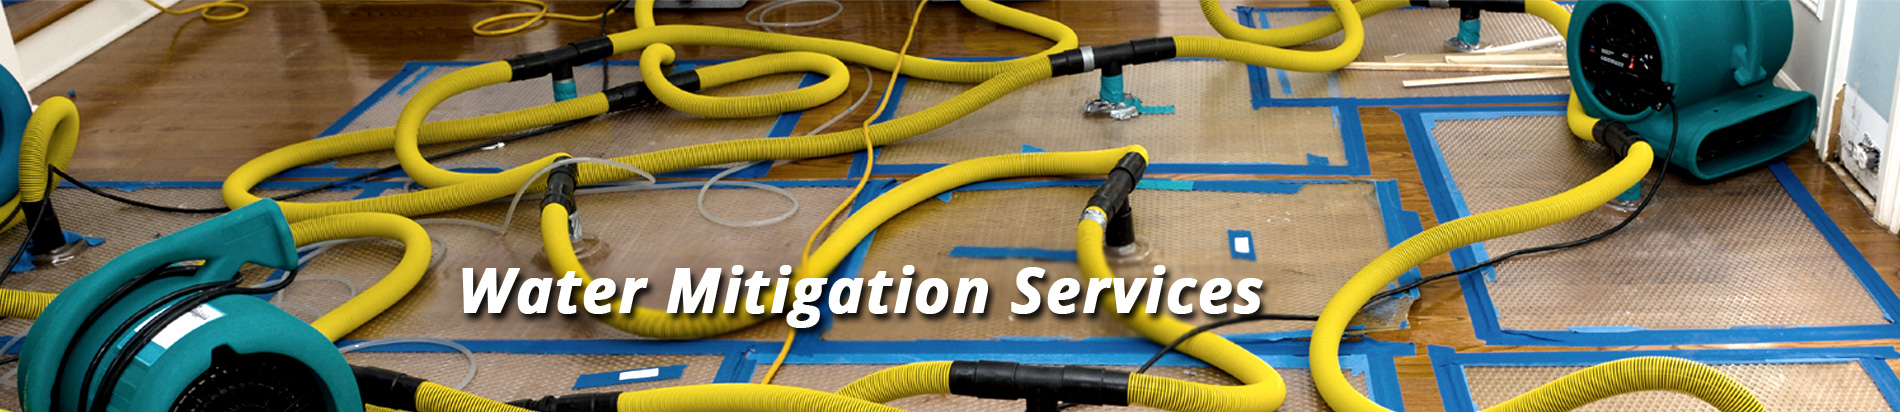 Insurance-Water-Mitigation-Services